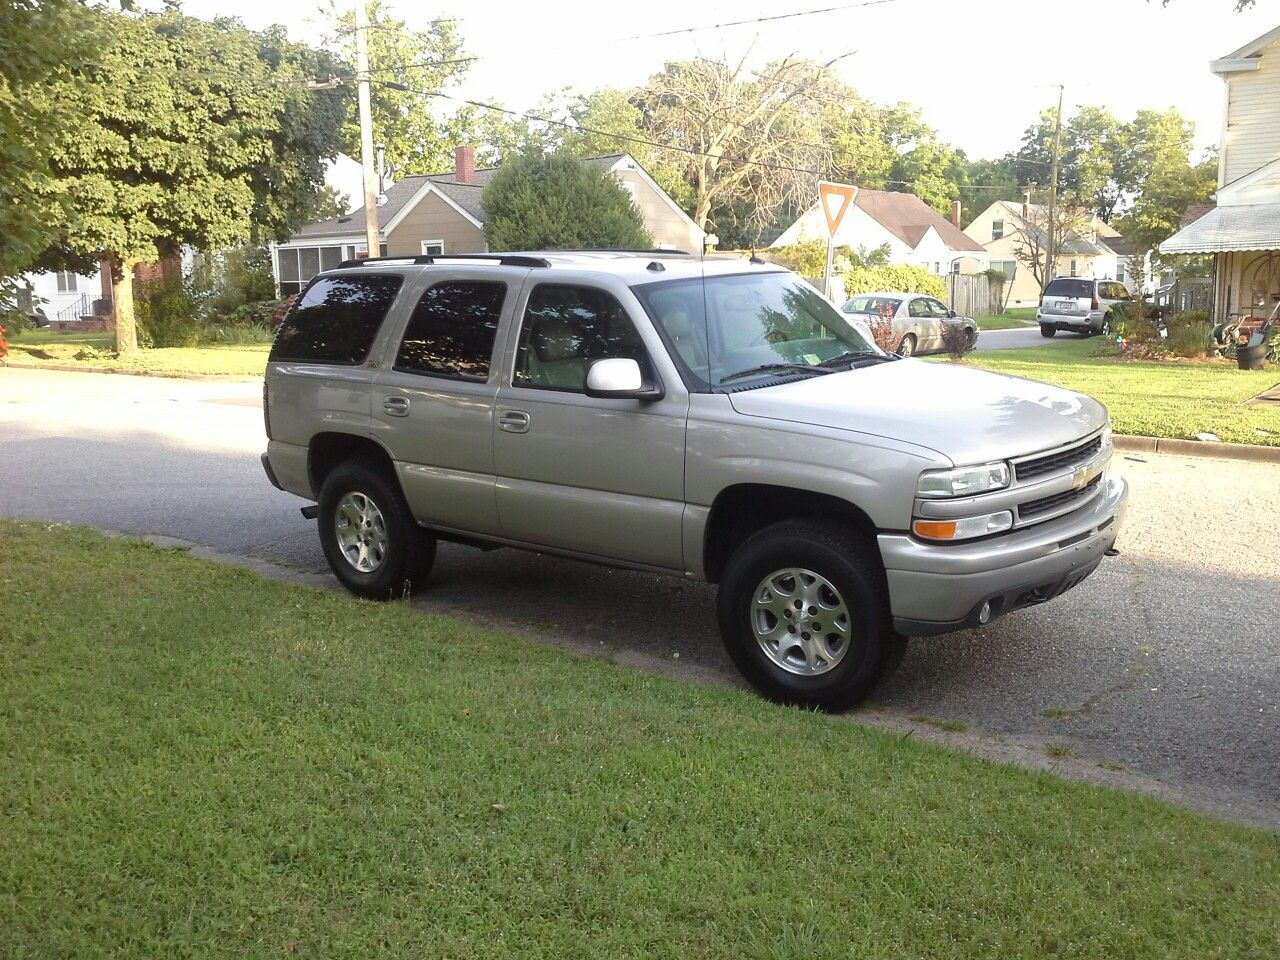 2004 Chevy Tahoe Z71 Stripped Leveled Chevy Tahoe Z71 Chevy